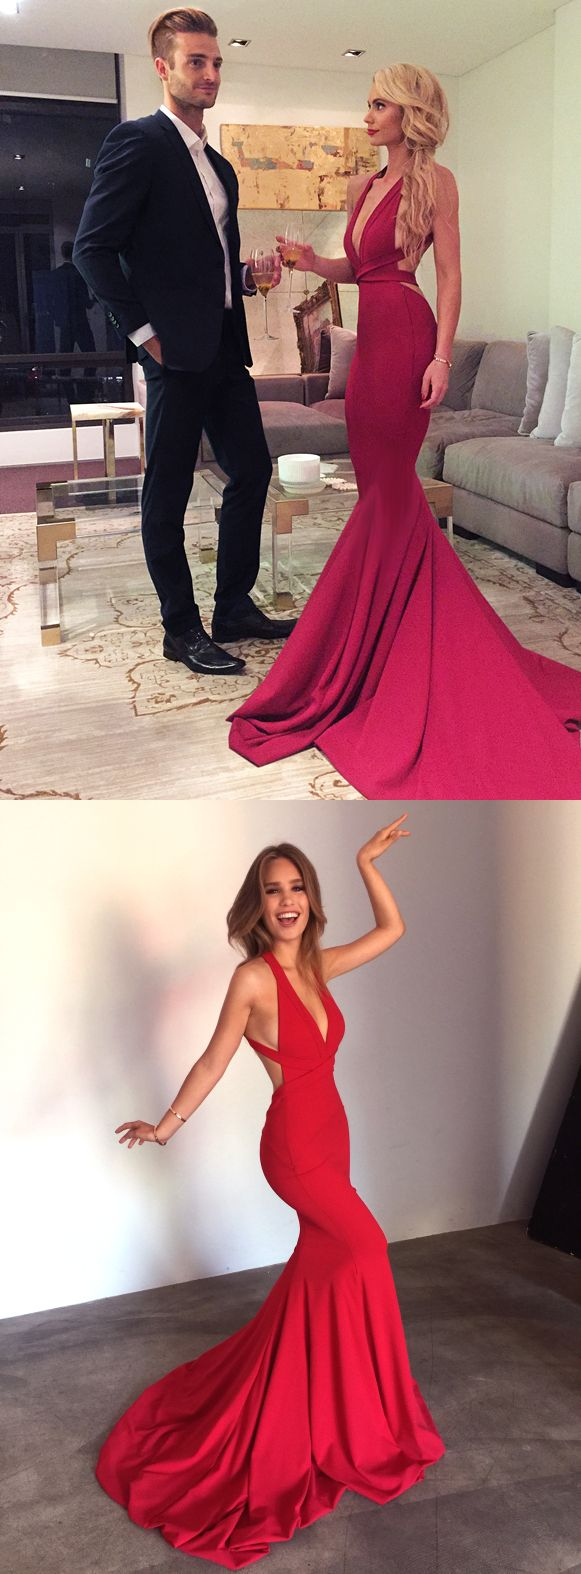 2017 long prom dress, red long prom dress, mermaid long prom dress, formal evening dress